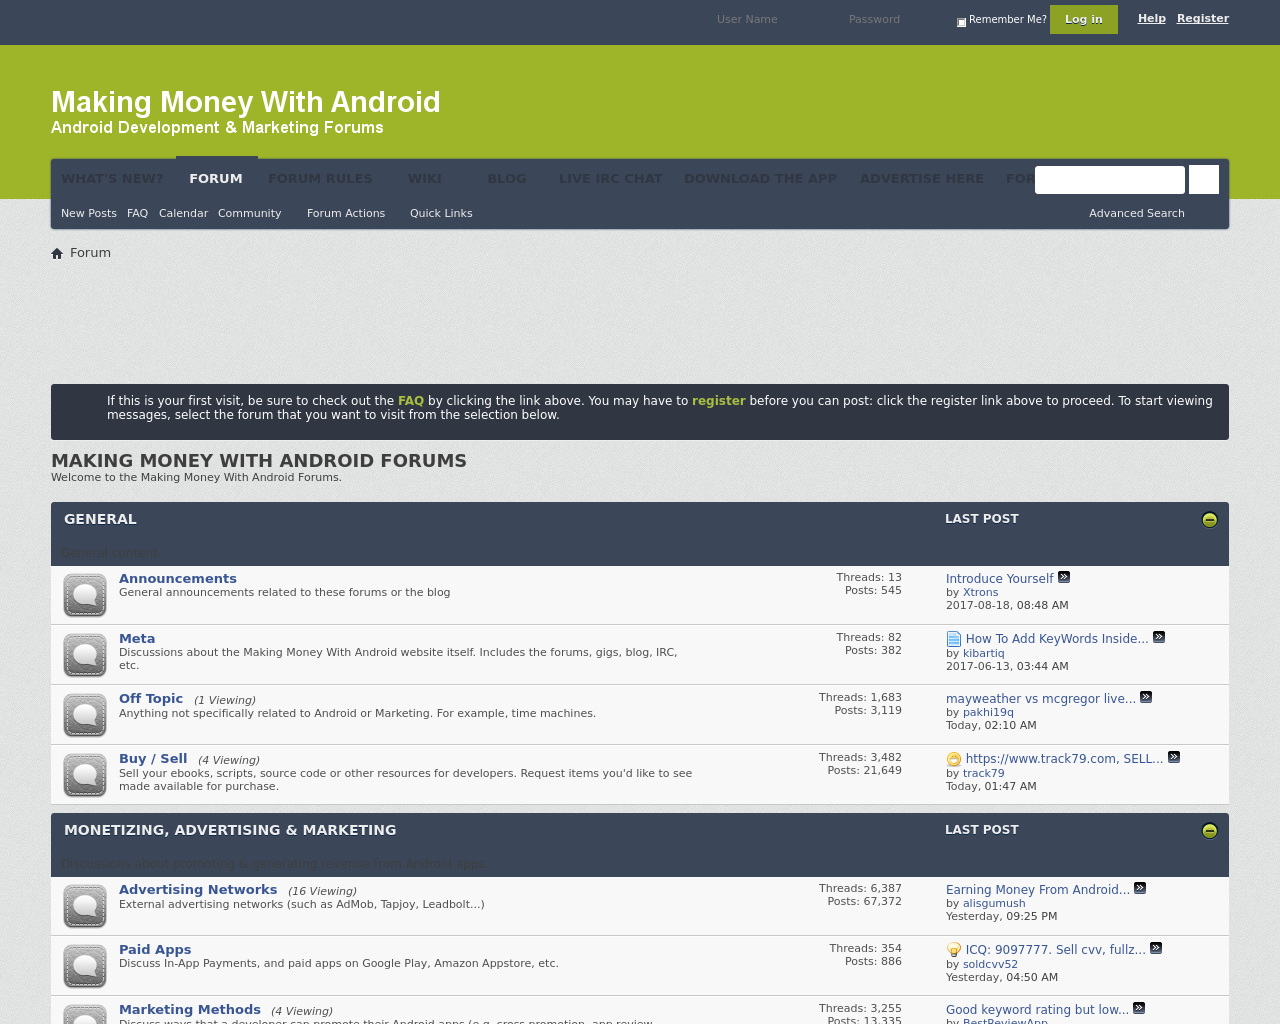 Making-Money-With-Android-Advertising-Reviews-Pricing